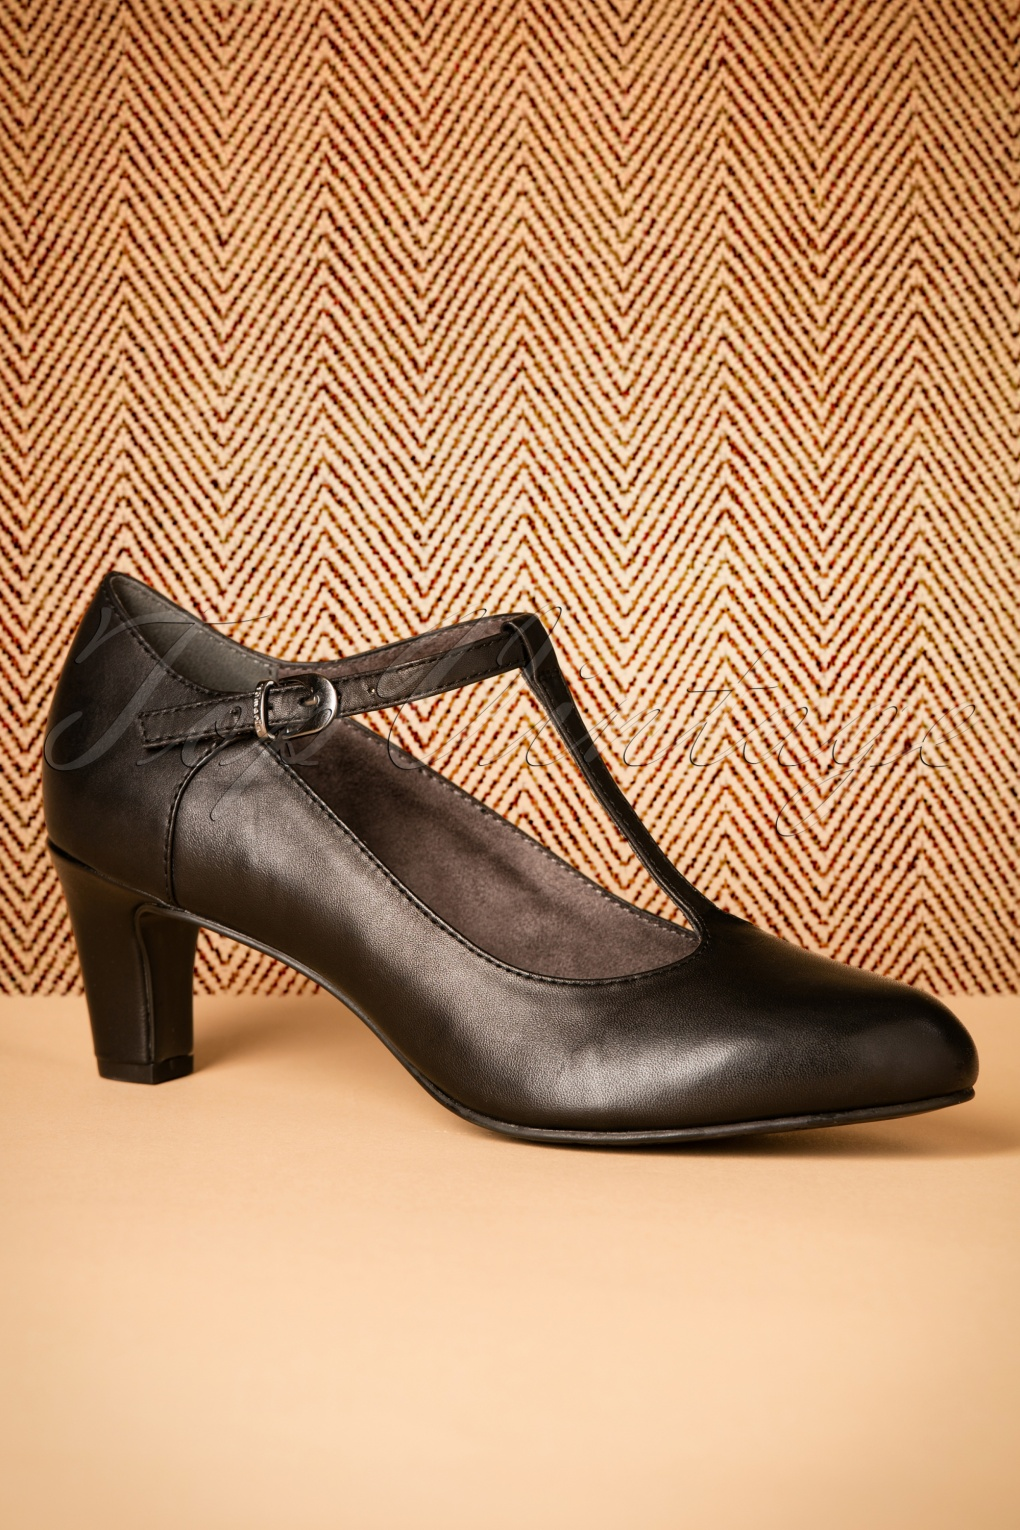 1940s Style Shoes 40s Neva T-strap Leather Pumps in Black £64.17 AT vintagedancer.com